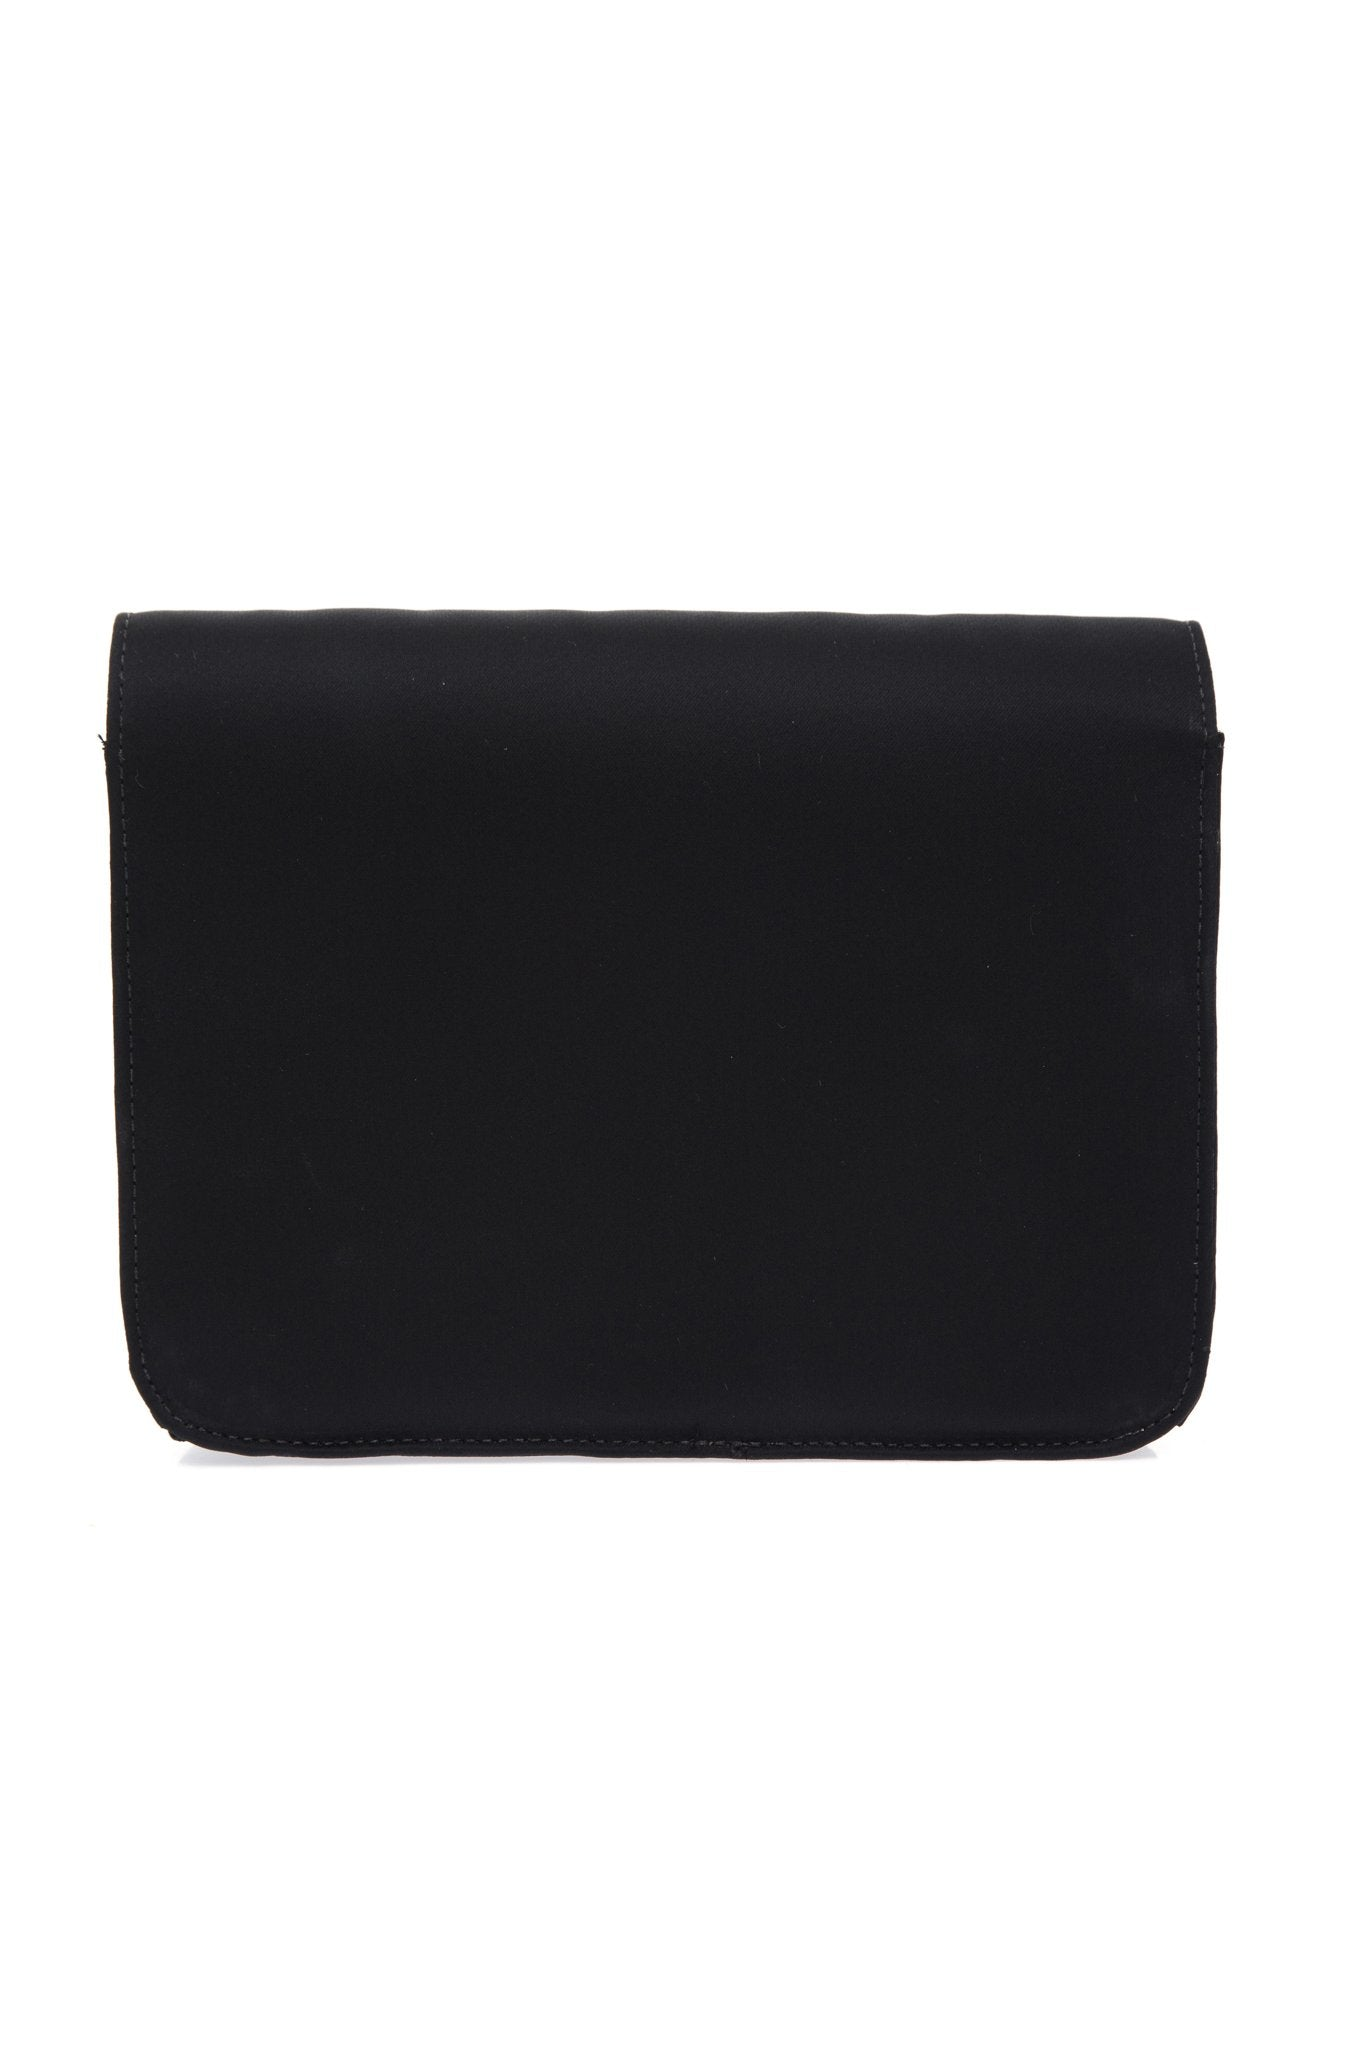 BLACK CLARISSA BAG